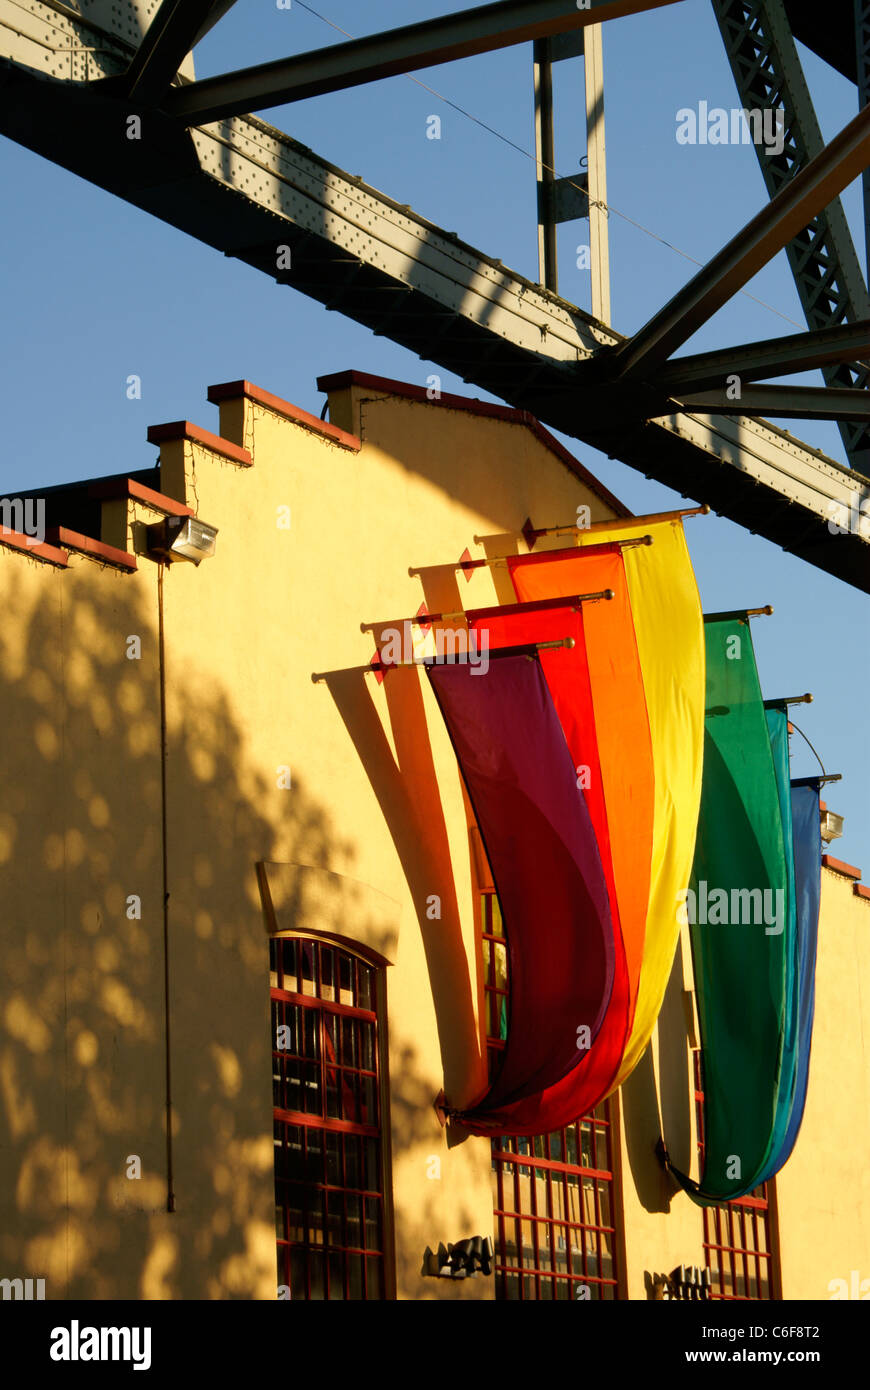 Colorful banners at sunset, Granville Island, Vancouver, British Columbia, Canada - Stock Image